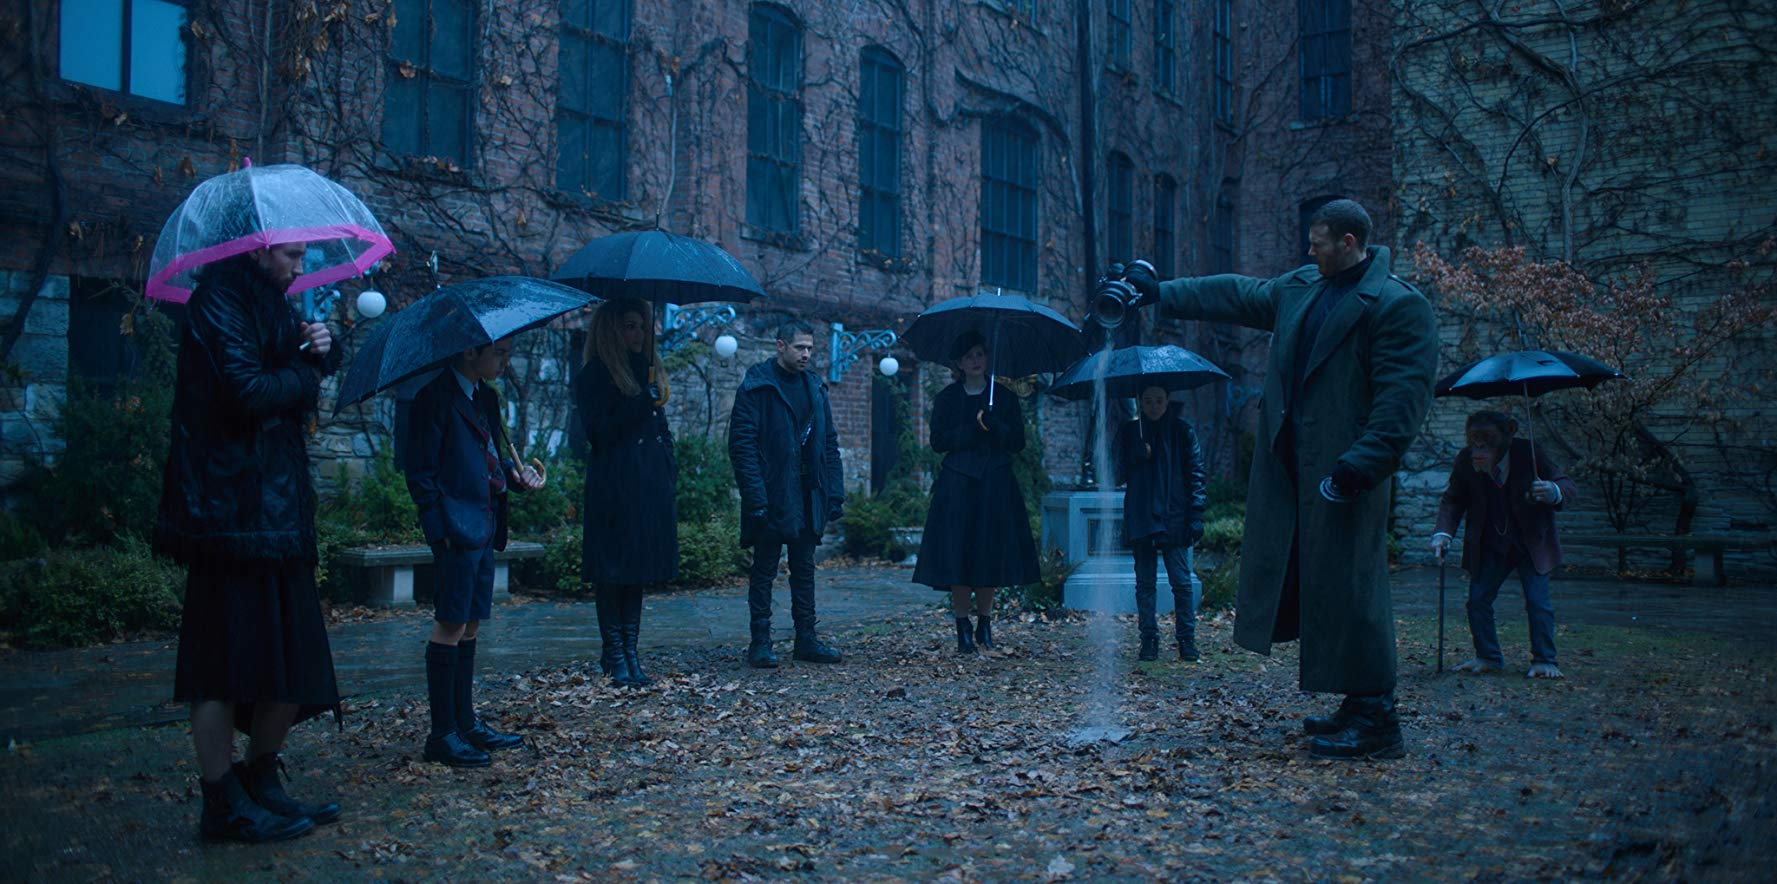 The Umbrella Academy standing in front of what seems to be Ben Hargreeves memorial statue. (2019) Source: IMDB